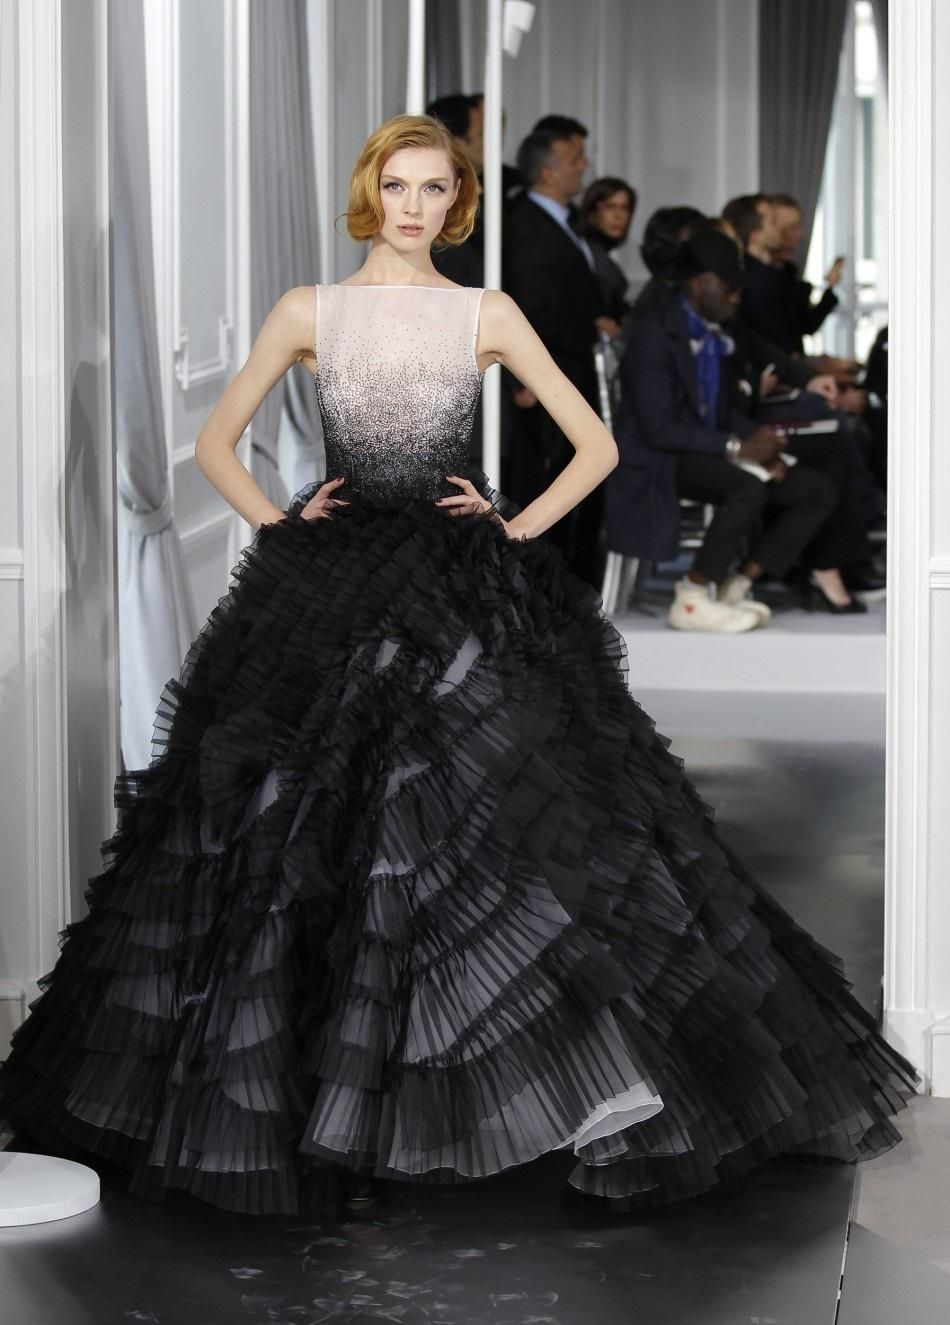 Christian Dior - Black and white gown. | How Stylish | Pinterest ...